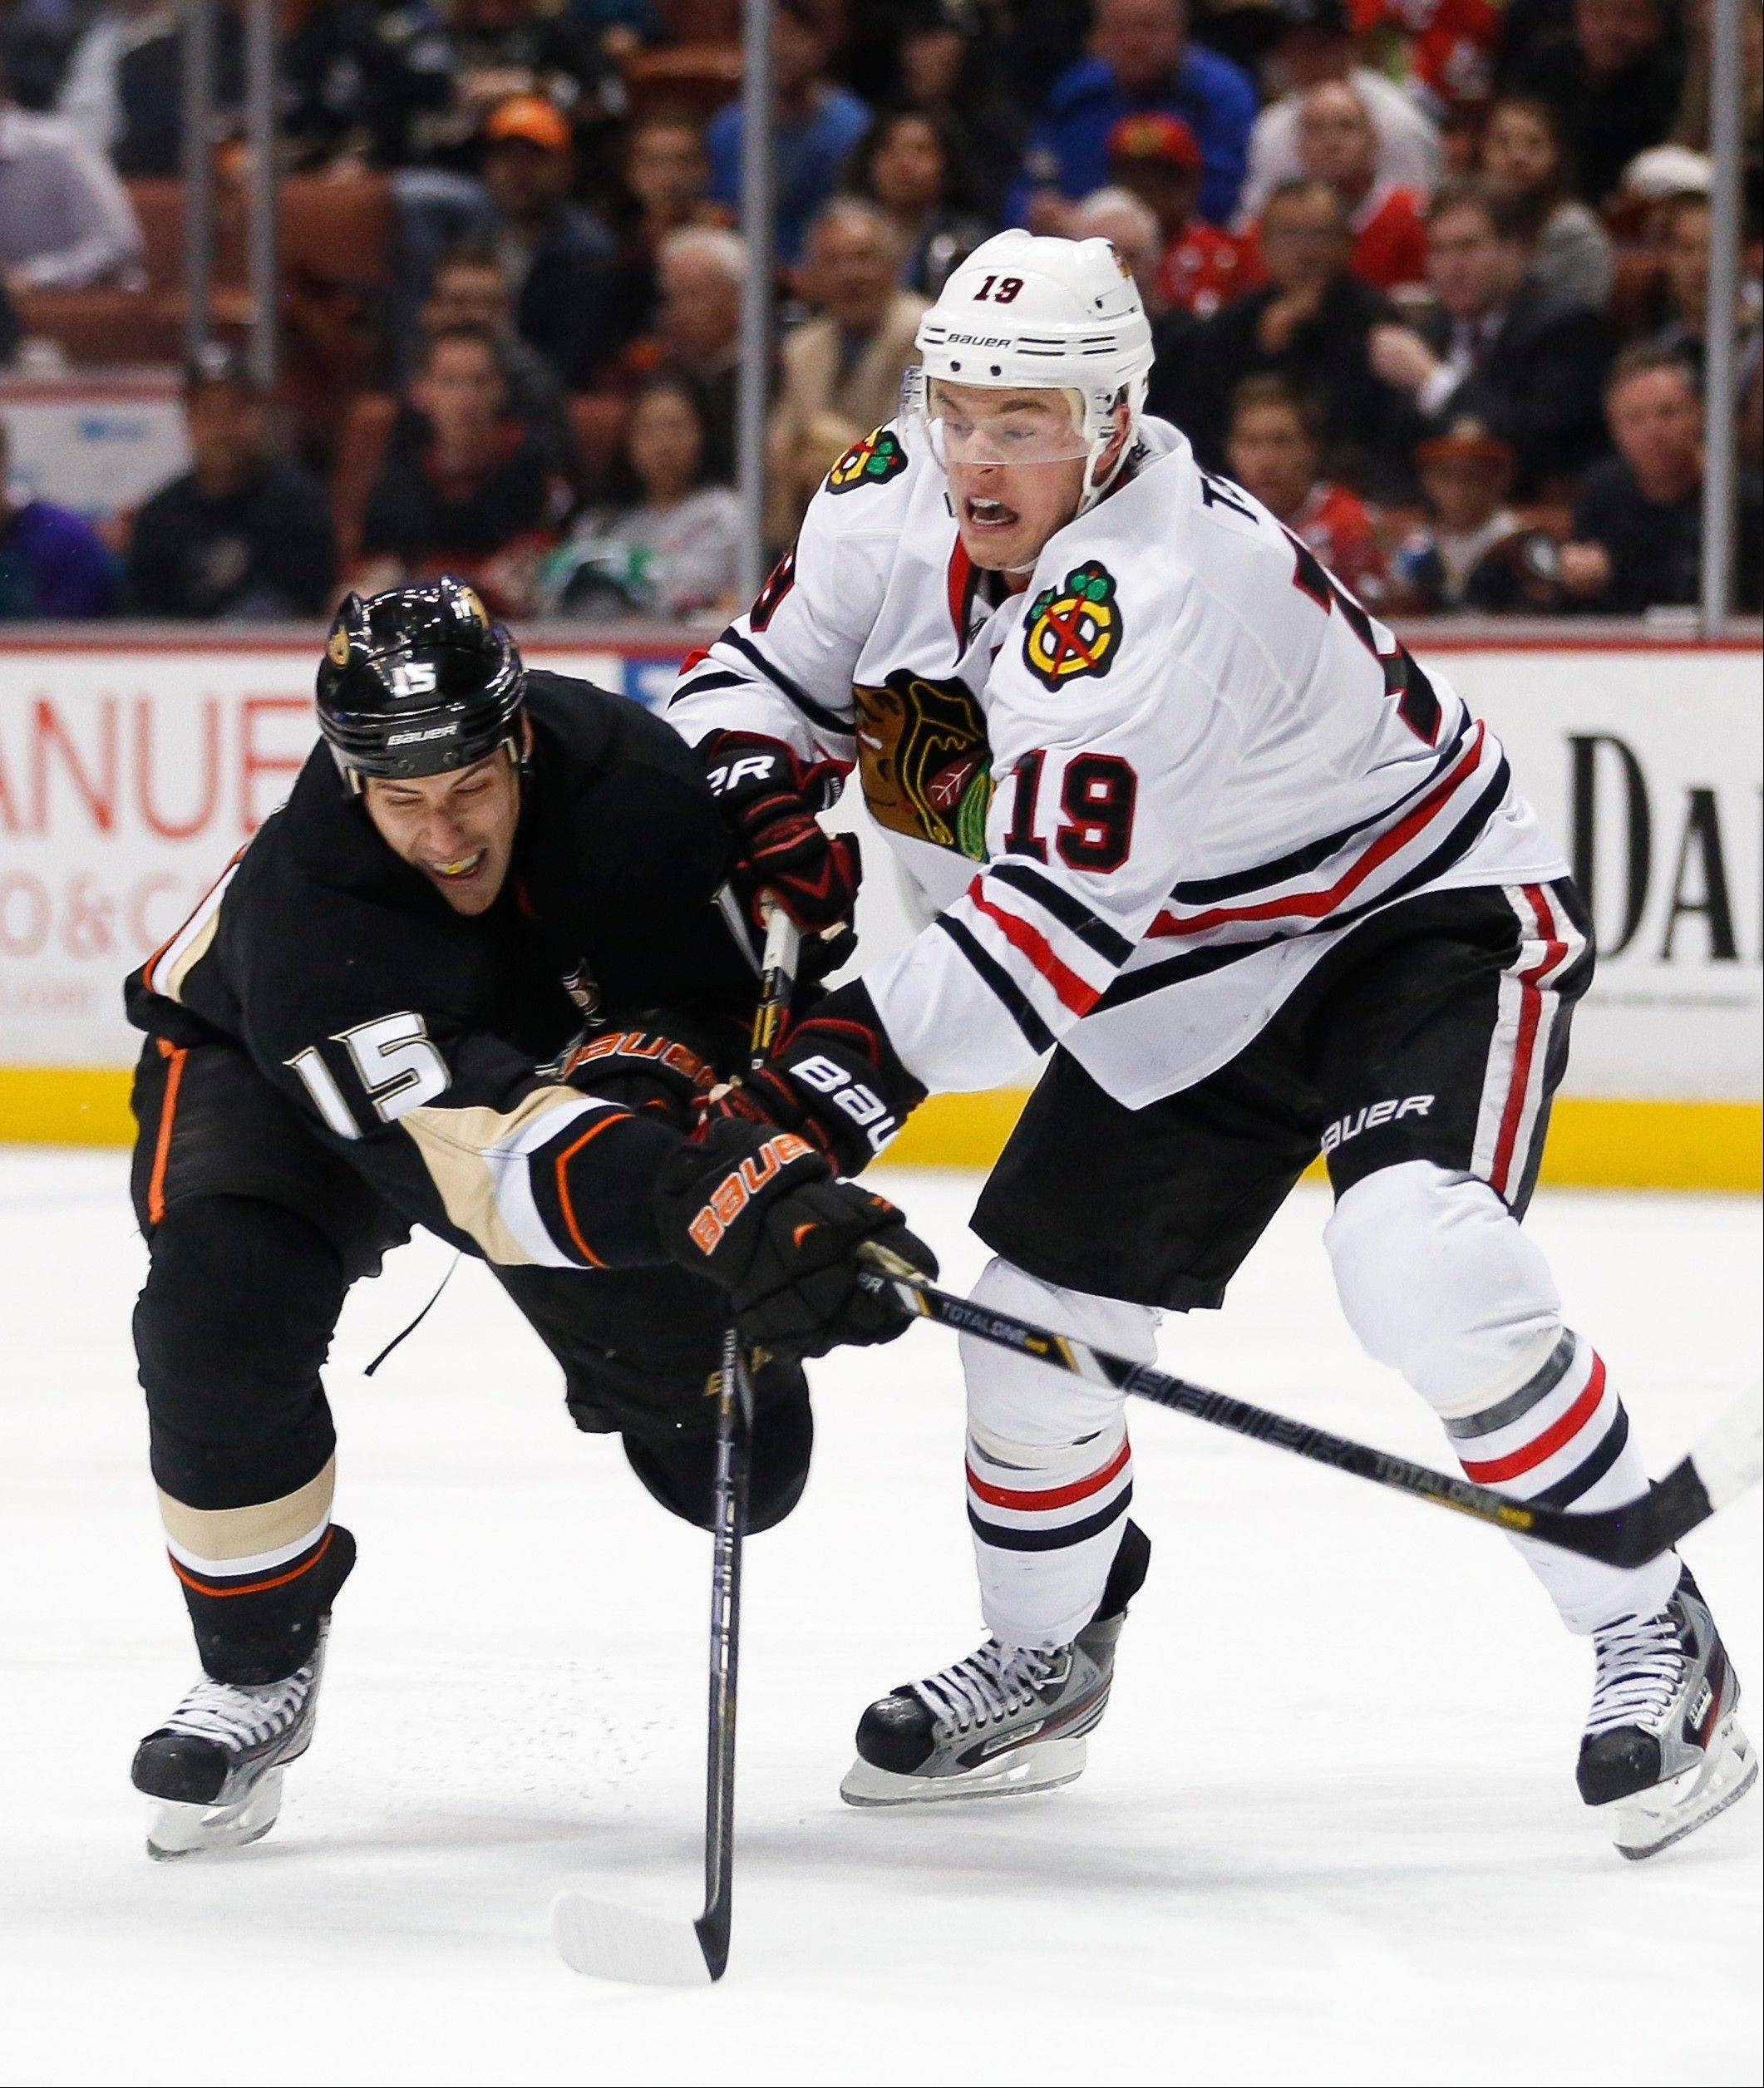 Anaheim Ducks' Ryan Getzlaf, left, and Chicago Blackhawks' Jonathan Toews vie for the puck during the second period .